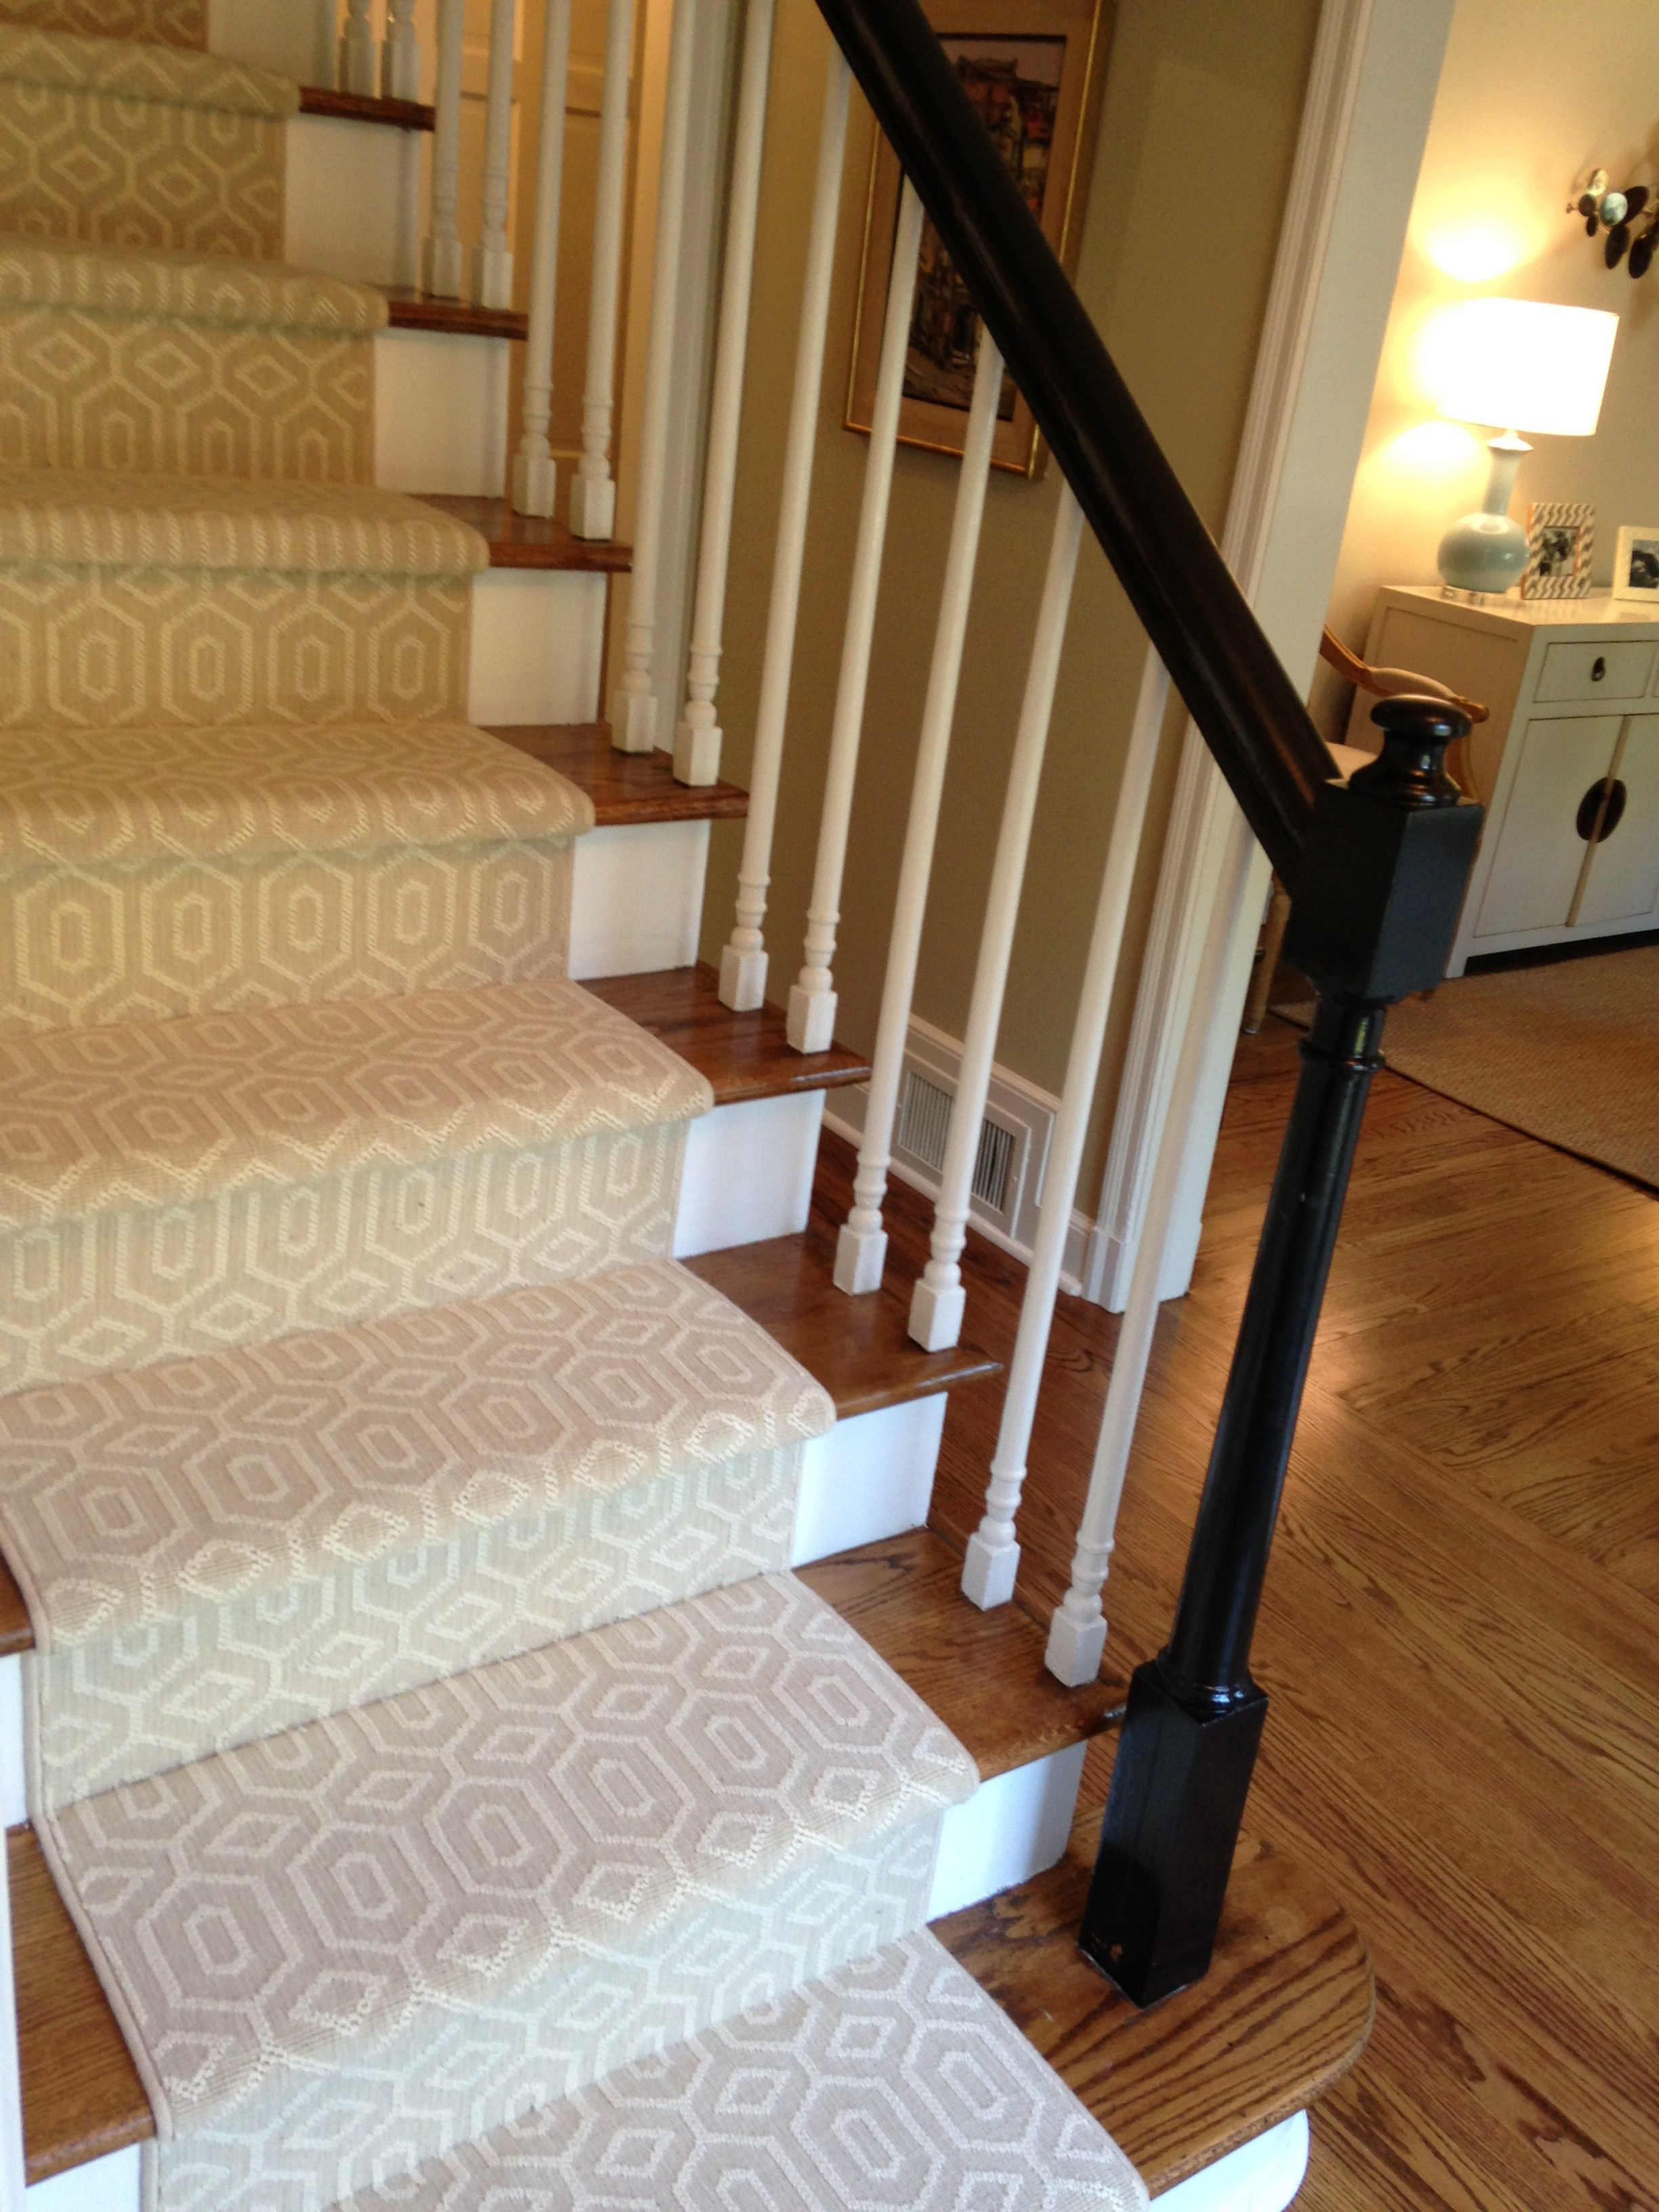 How To Use Stair Rugs On Stairs Yonohomedesign Com